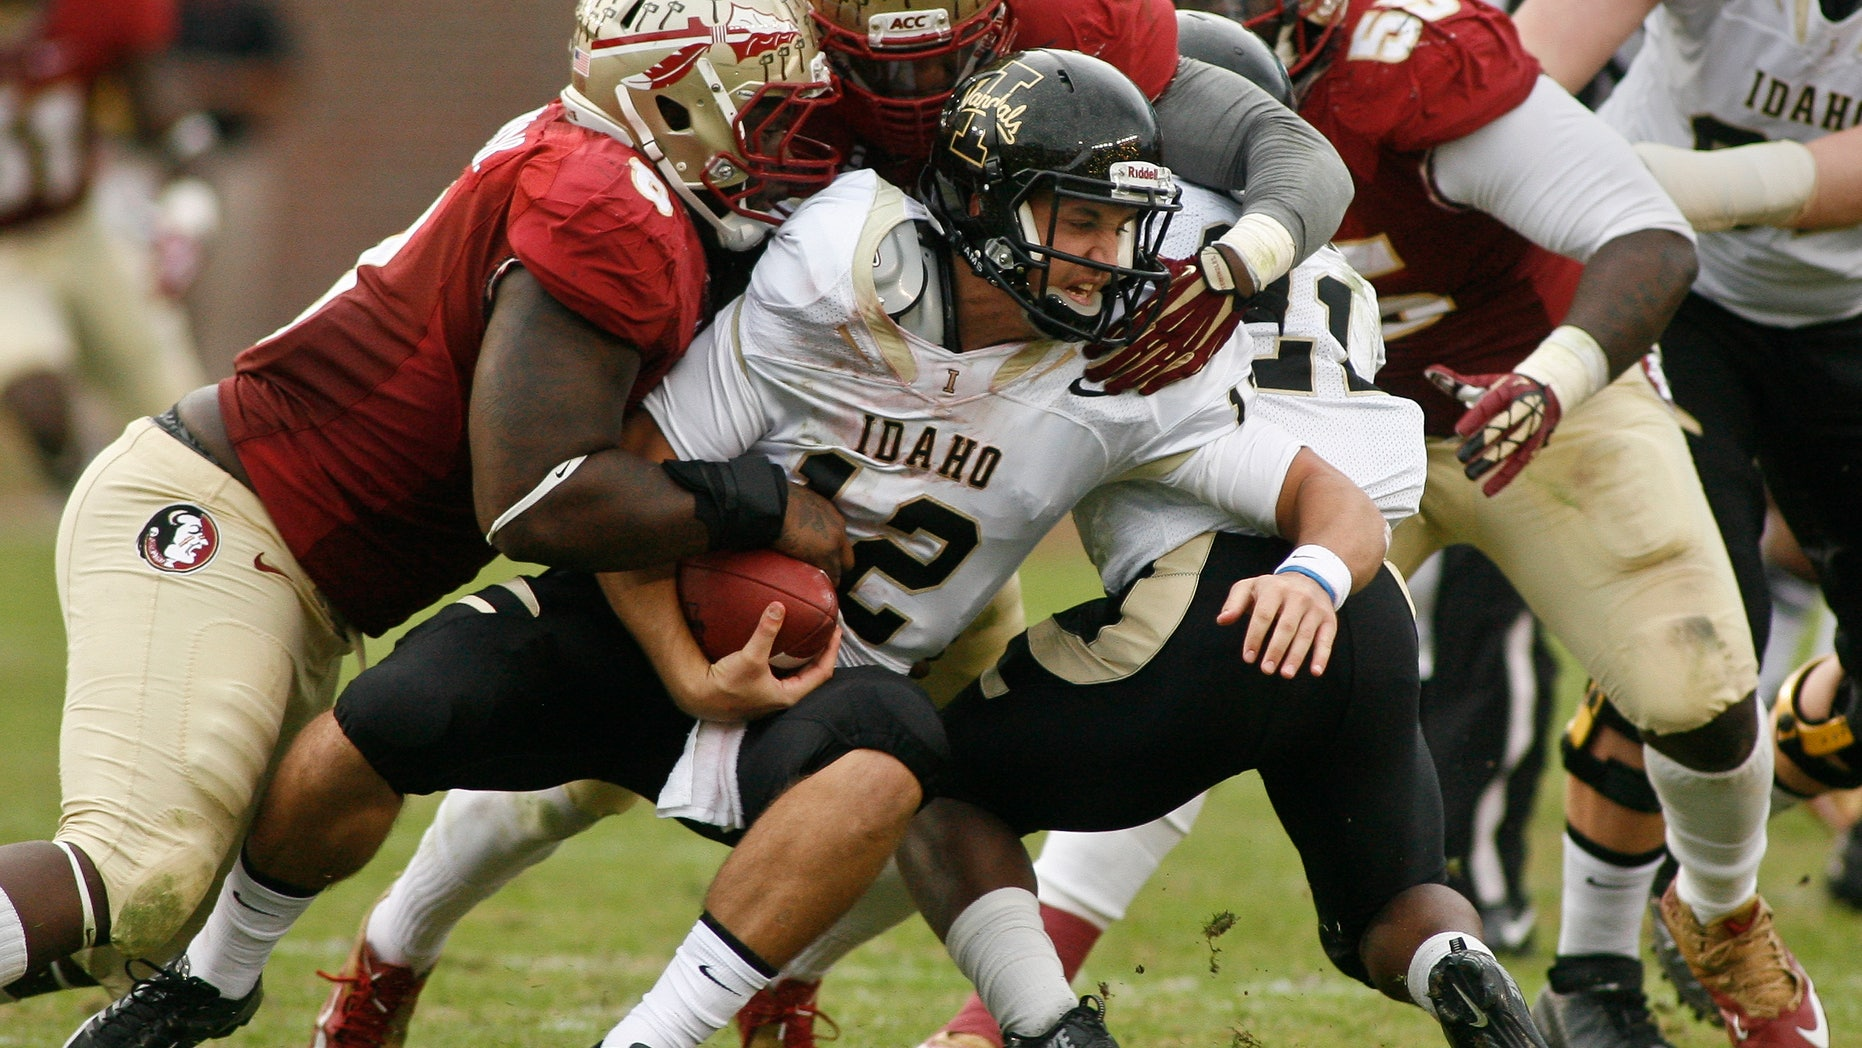 Florida State defensive tackle Timmy Jernigan (8), linebacker Christian Jones (7) and defensive tackle Jacobbi McDaniel (55) combine to sack Idaho quarterback Taylor Davis (12) in the first half of an NCAA college football game on Saturday, Nov. 23, 2013 in Tallahassee, Fla. (AP Photo/Phil Sears)